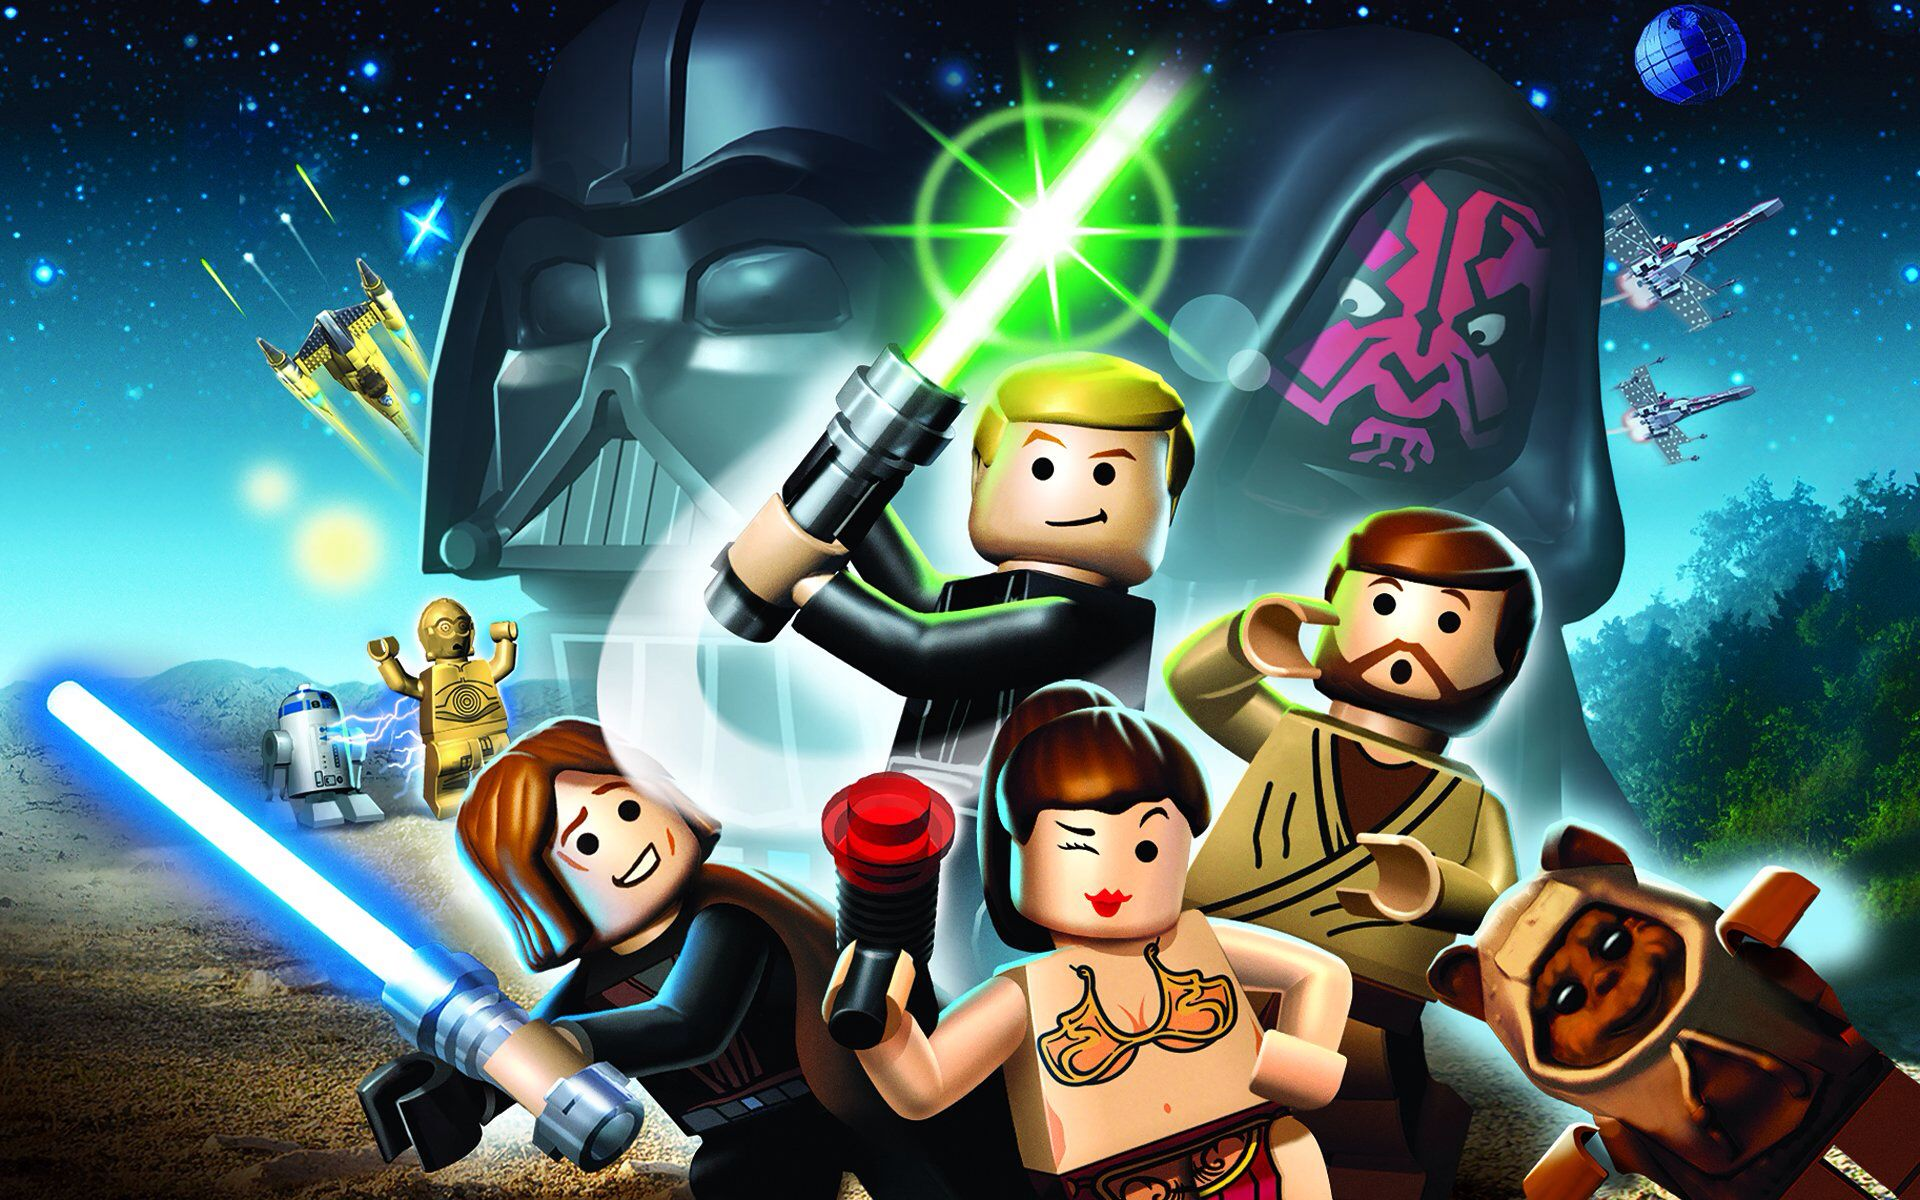 New LEGO: Stars Wars Video Game In Development | My Nintendo